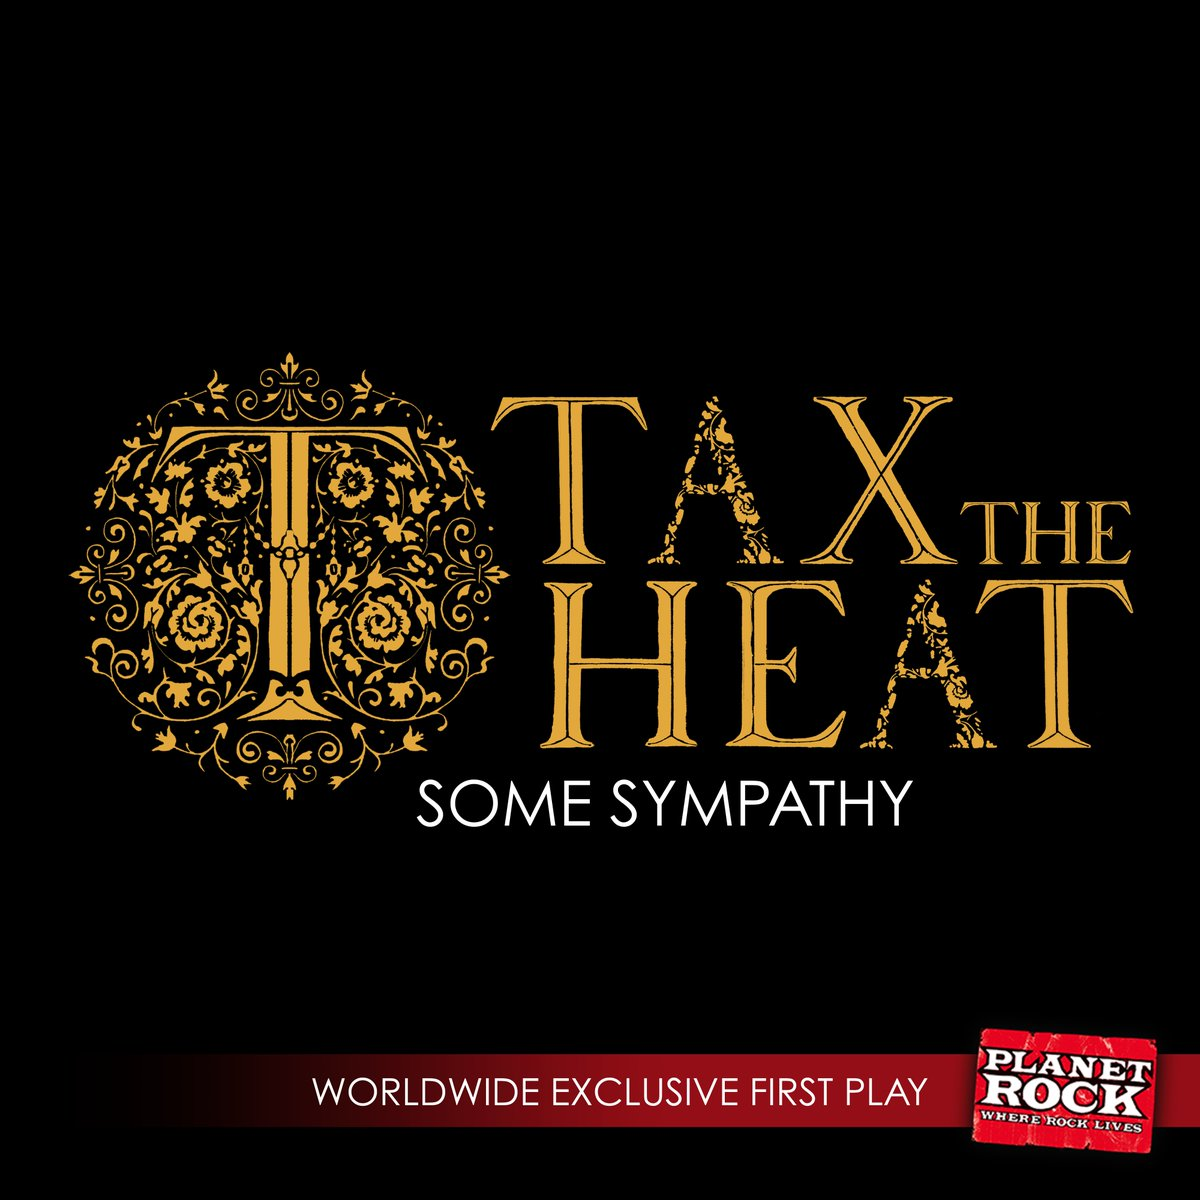 WORLDWIDE EXCLUSIVE 1ST PLAY of our NEW SINGLE 'Some Sympathy' on @PlanetRockRadio w/ @PaulAnthonyRock THURSDAY 8AM https://t.co/xukzHH0vFd